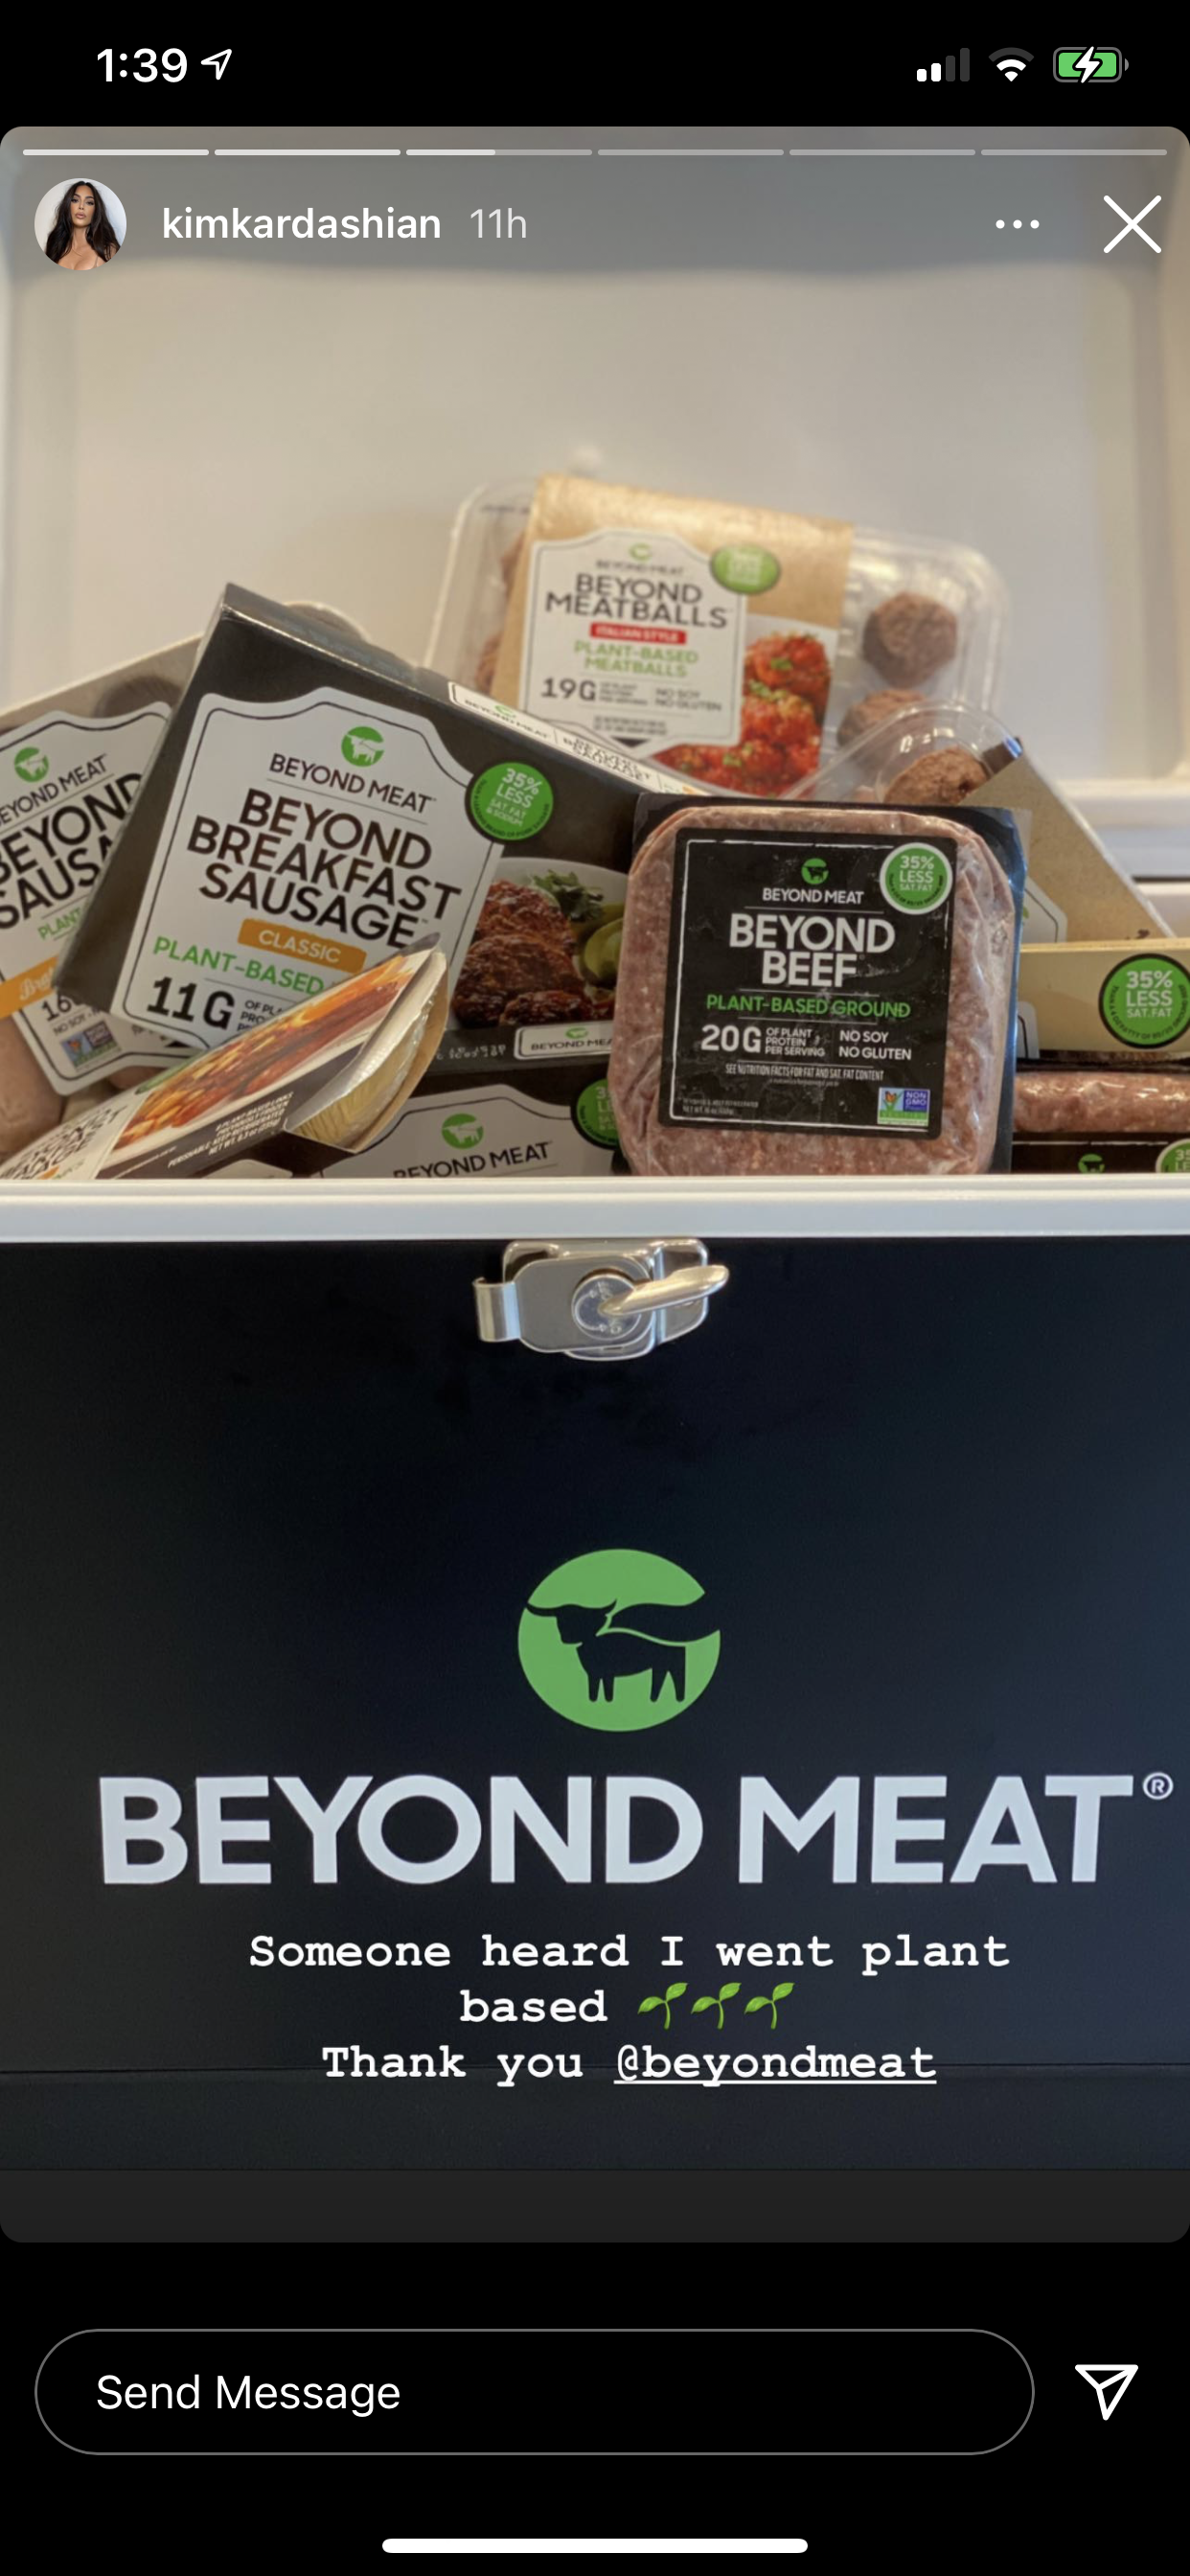 Someone Heard I Went Plant Based Says Kim Kardashian As She Instagrams Beyond Meat Products One Green Planet